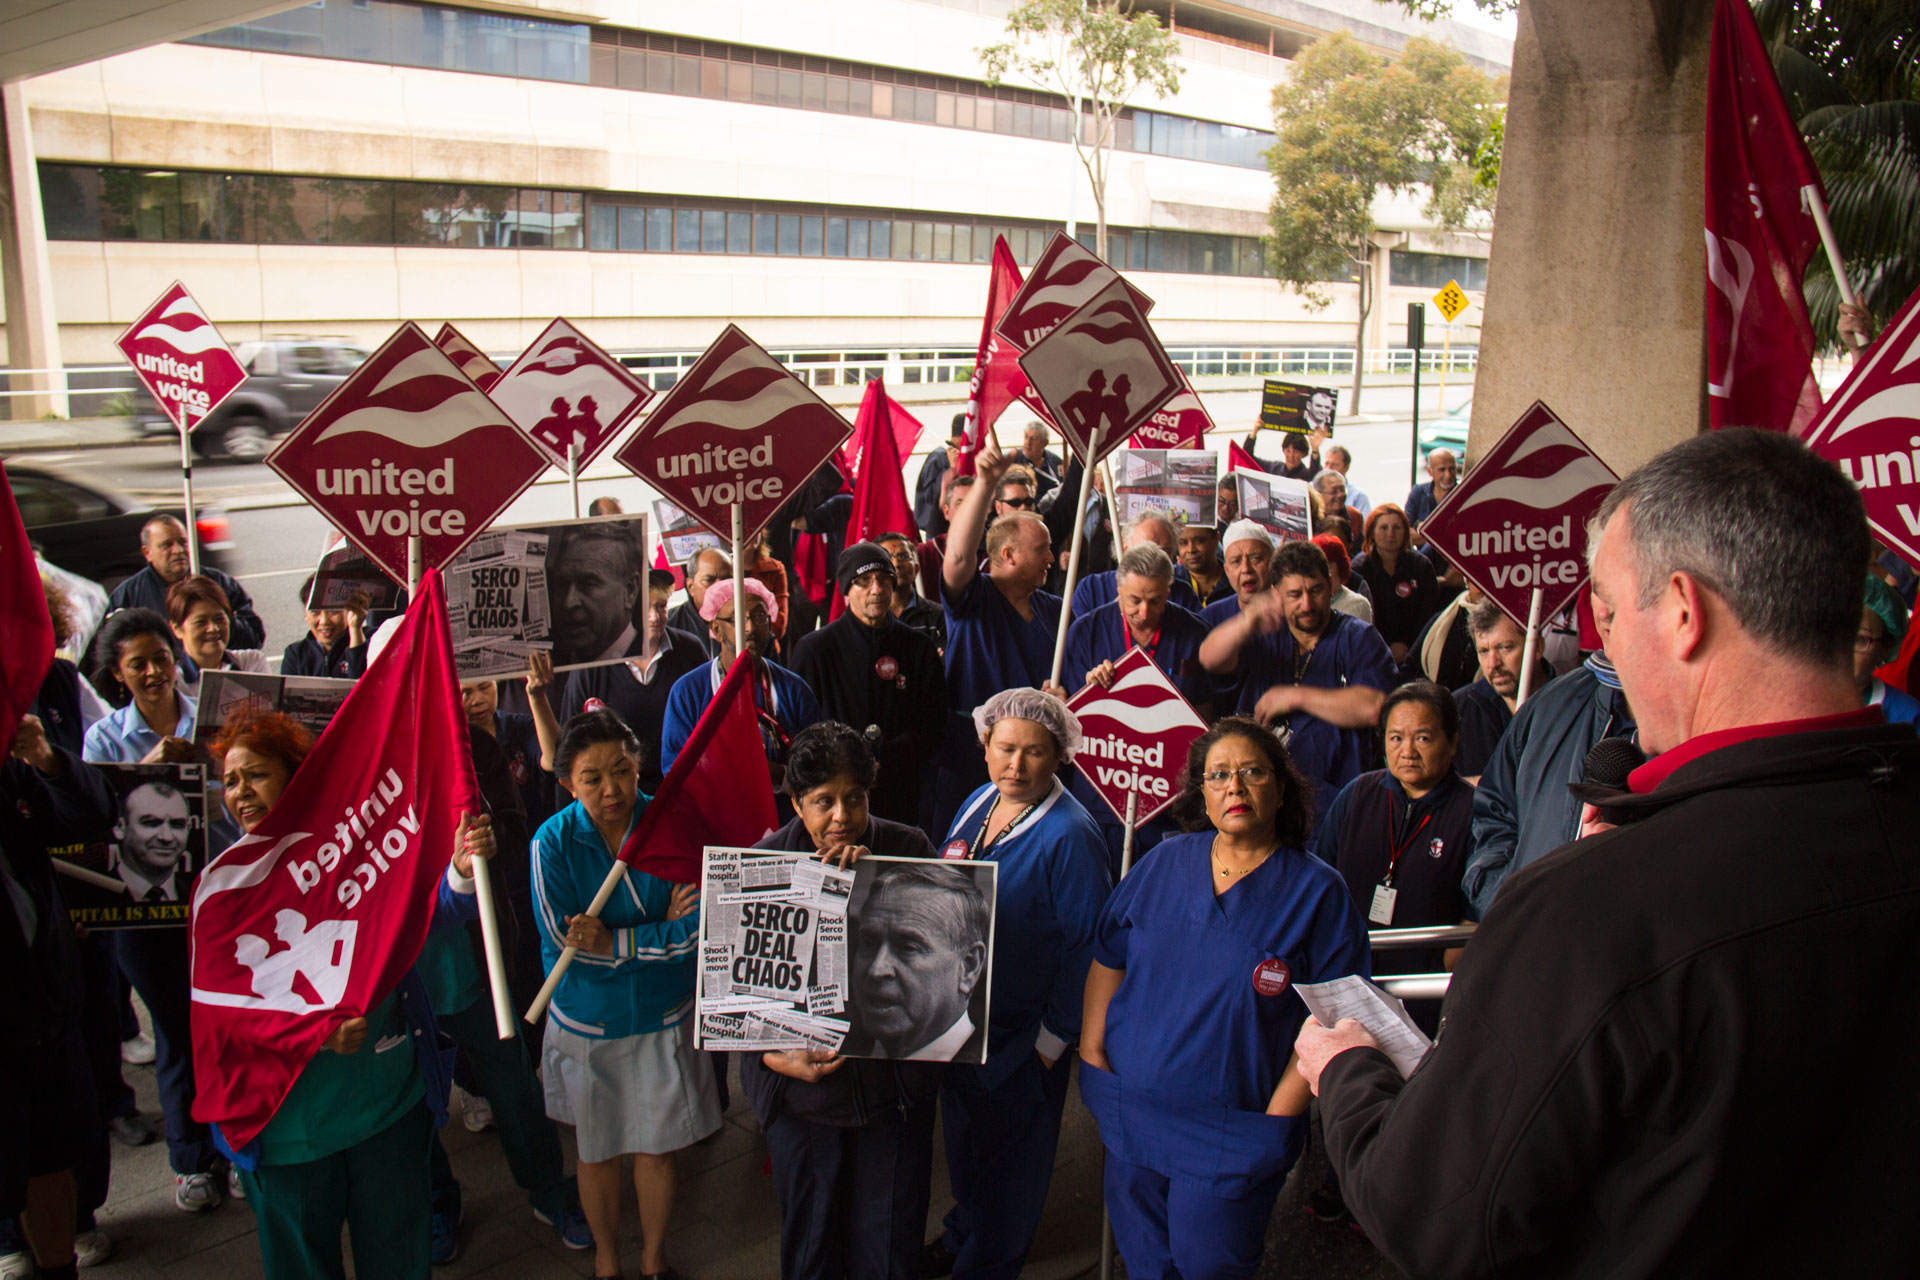 Royal Perth Hospital support workers take action